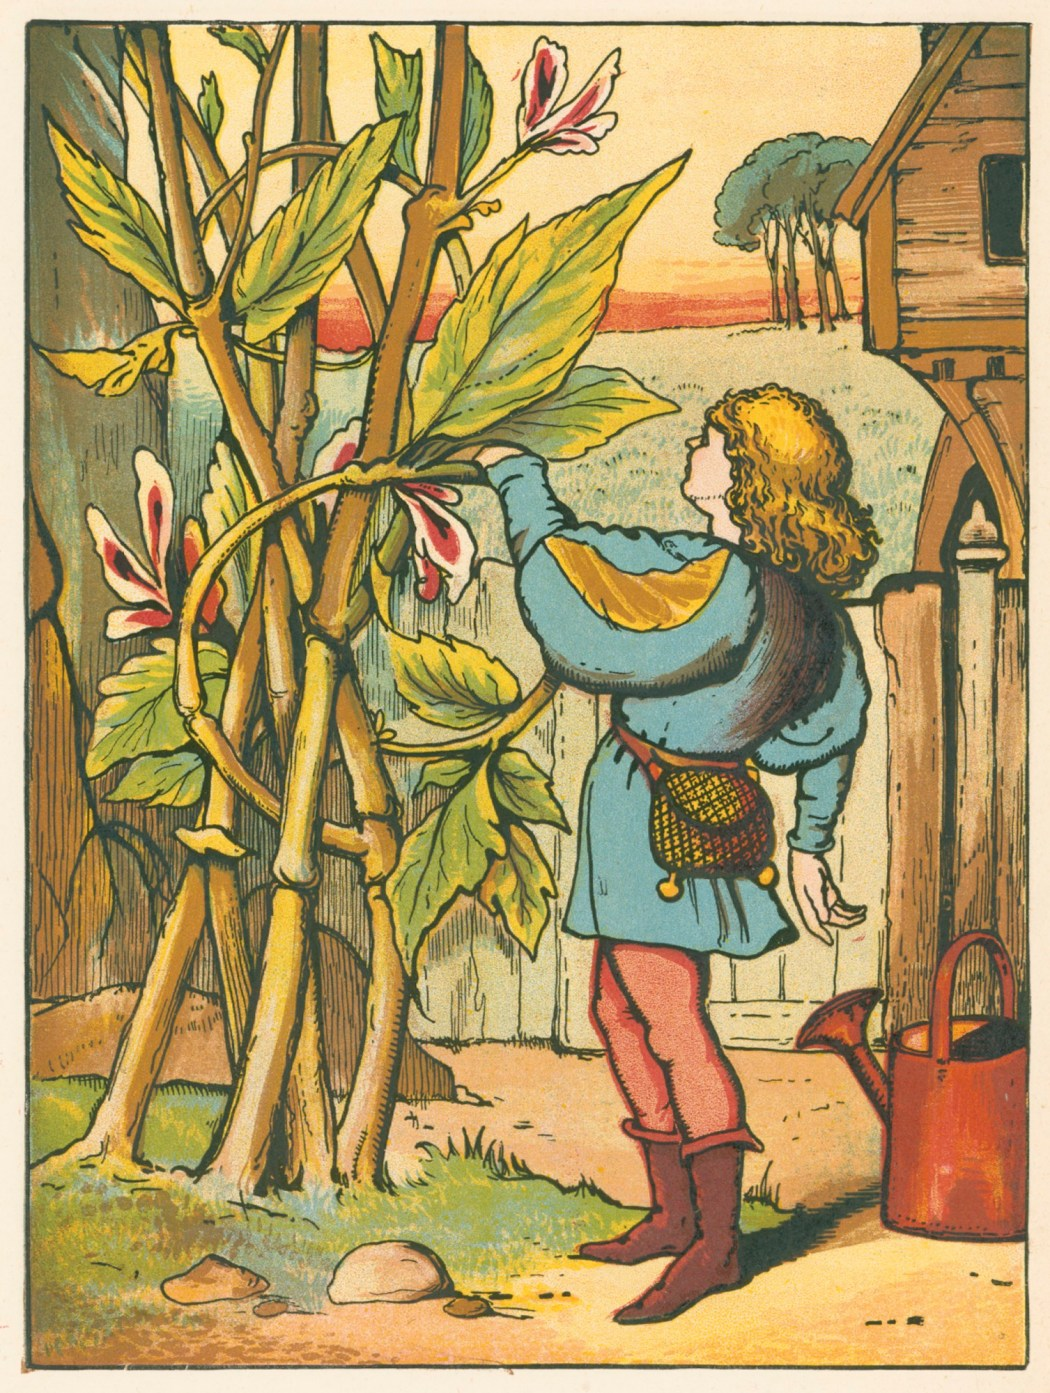 Jack and the beanstalk | Books | RA Collection | Royal Academy of Arts